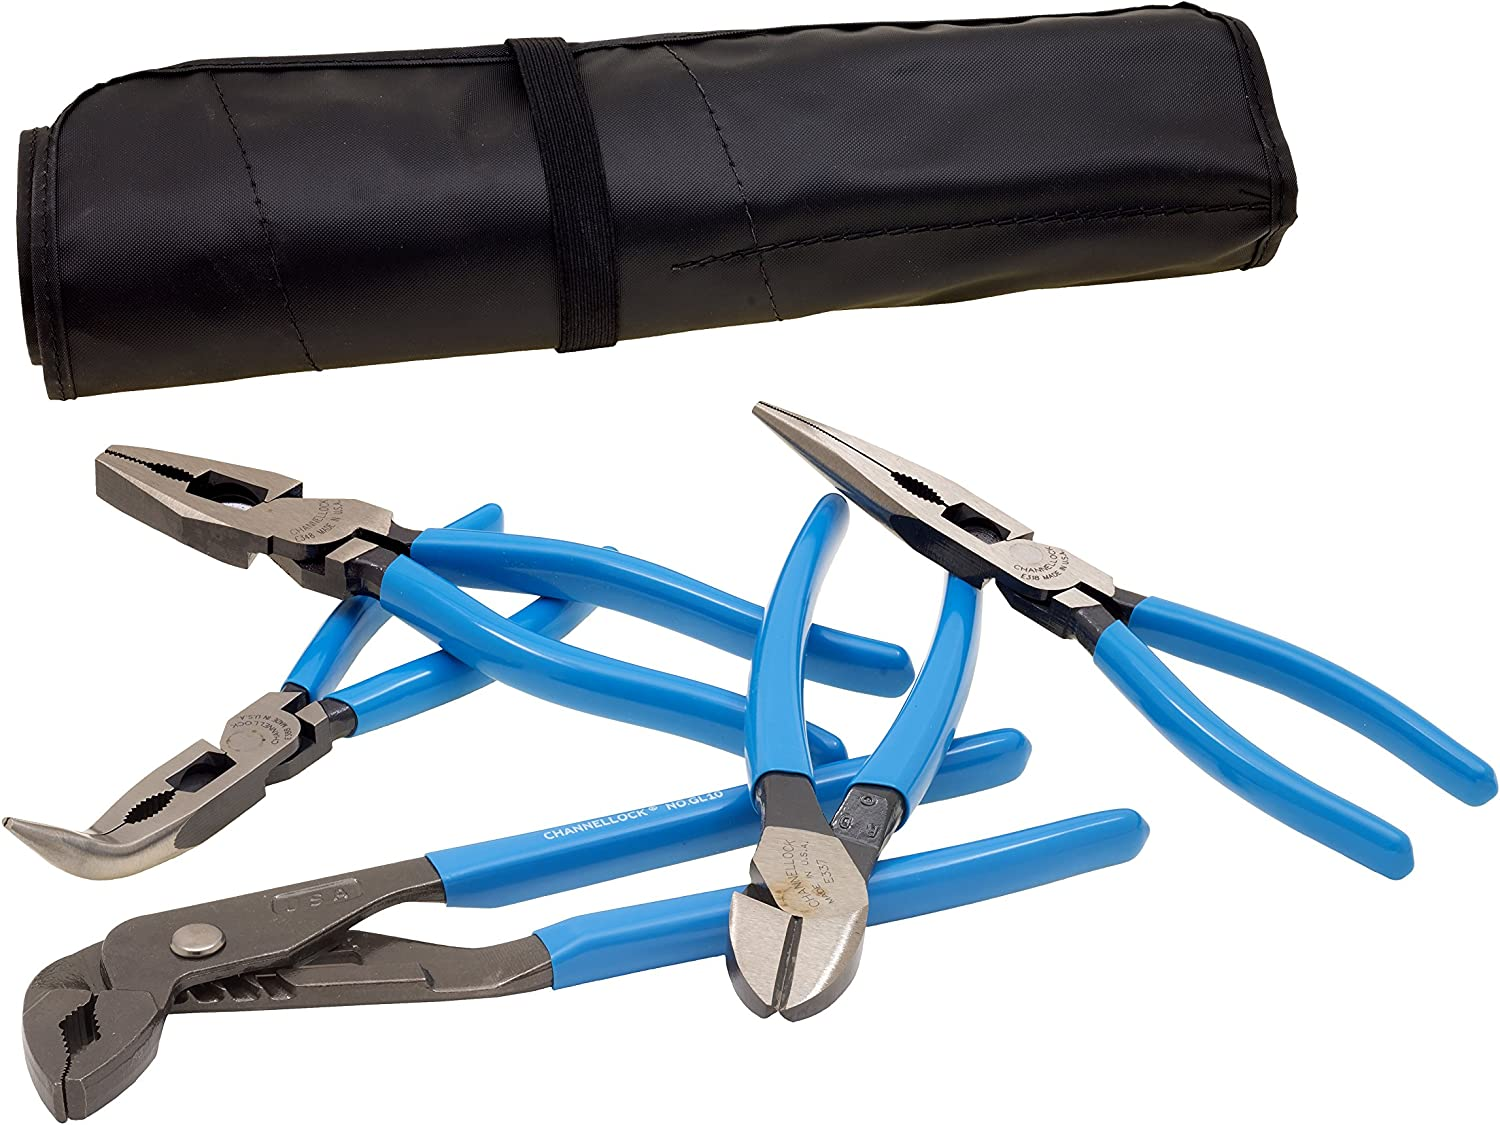 5-Piece Channellock Tool Roll-53 E-Series Plier Set with Tool Roll